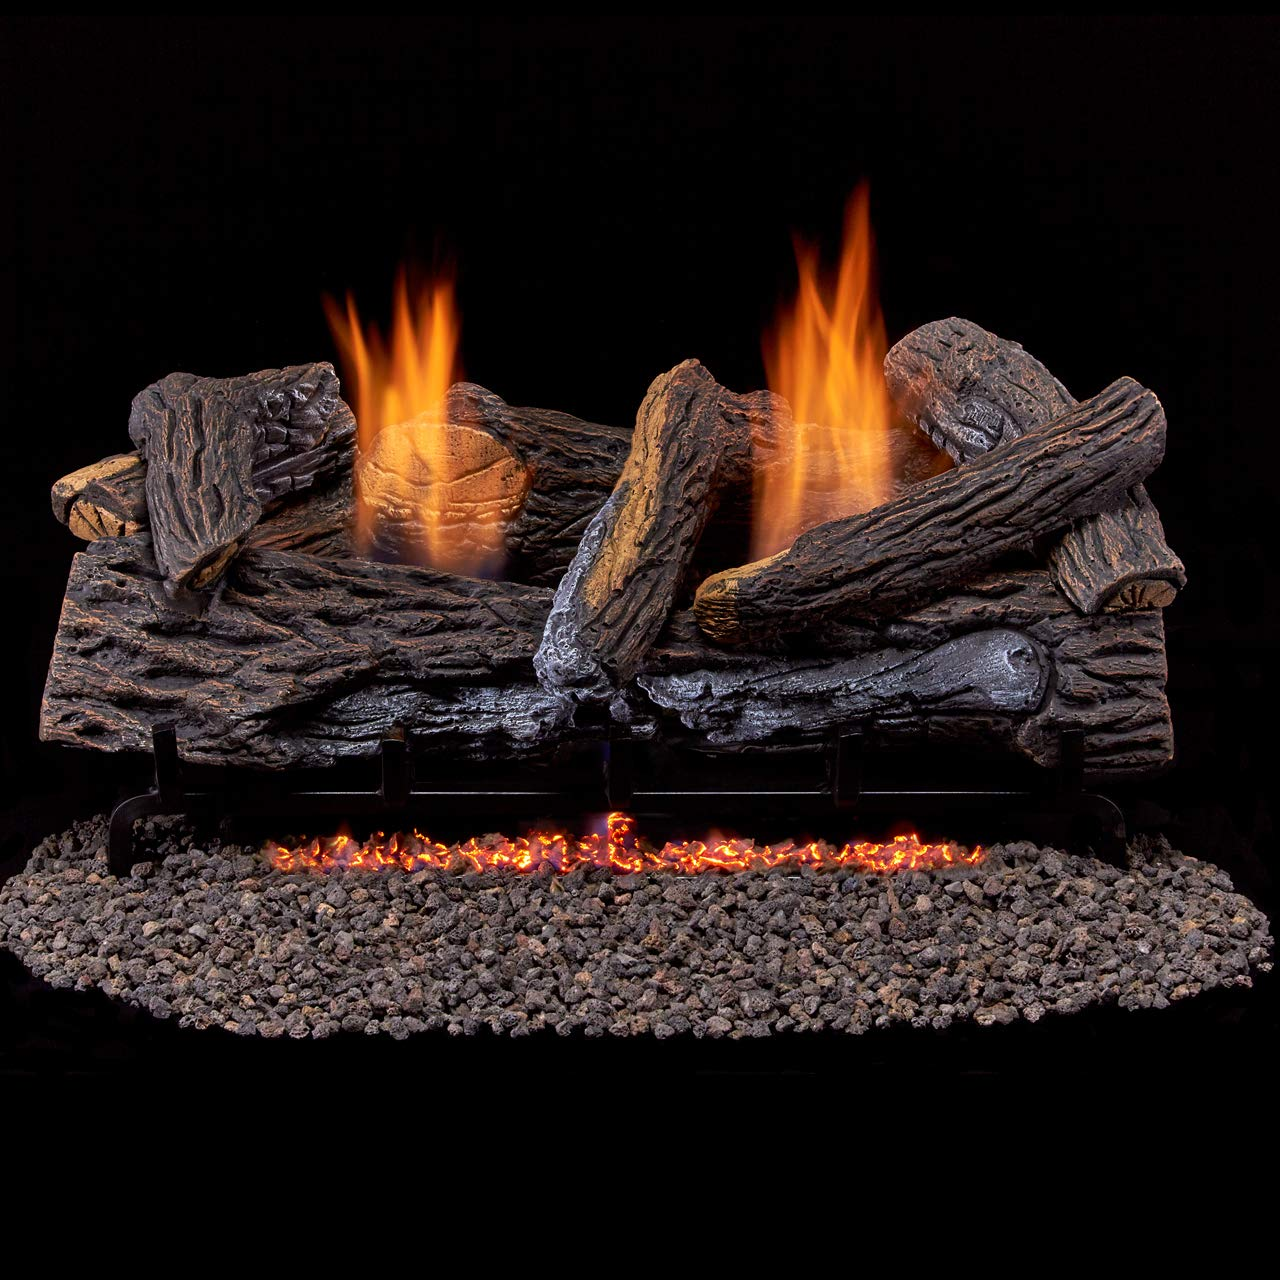 Duluth Forge Ventless Propane Gas Log Set-24 in Split Red Oak 33,000 BTU, Manual Control, 24 Inch by Duluth Forge